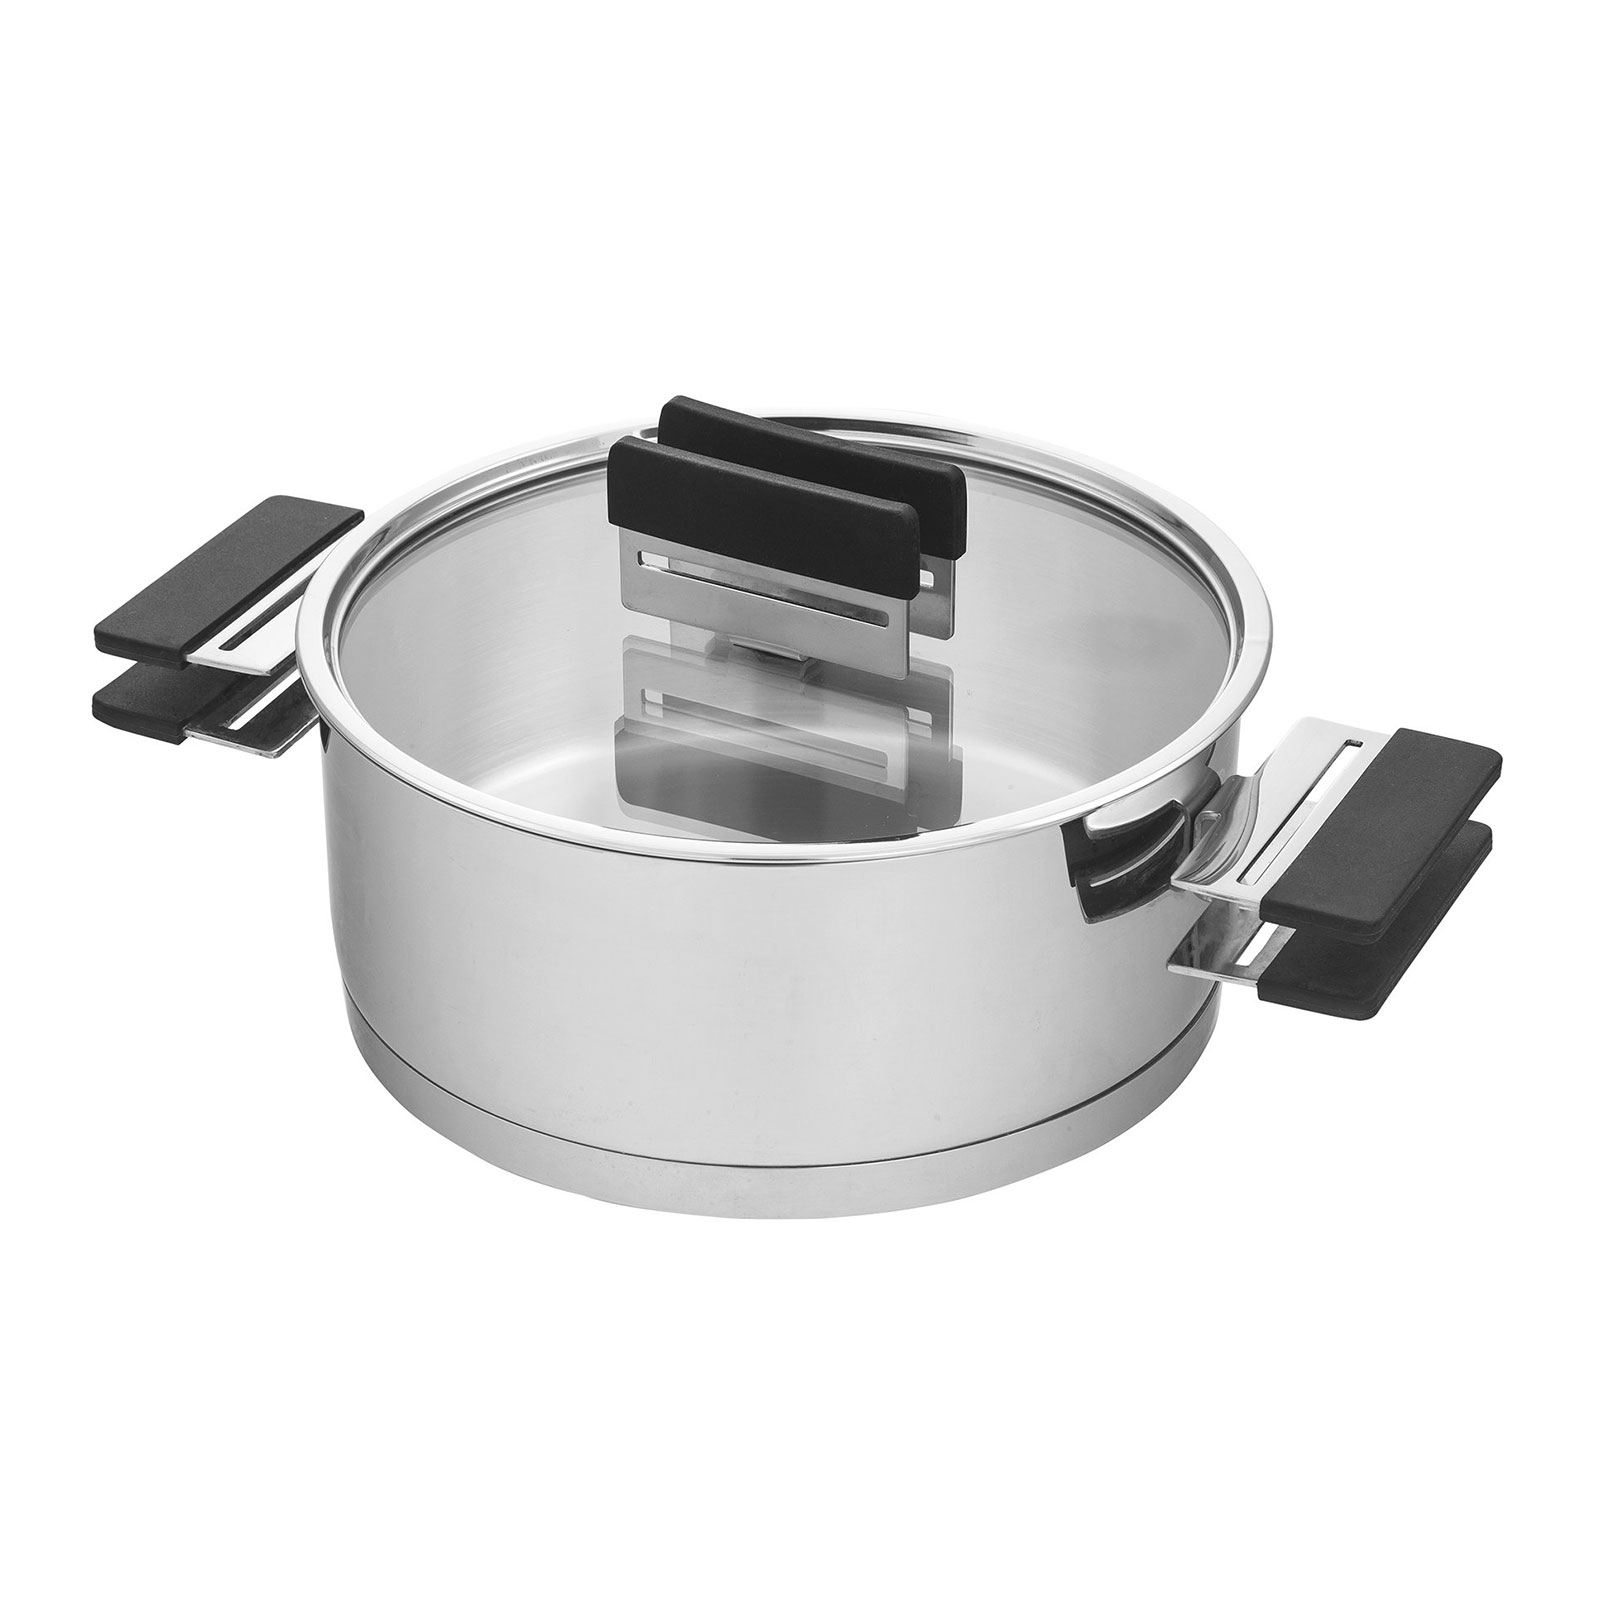 Walco Stainless WIR22 chafing dish